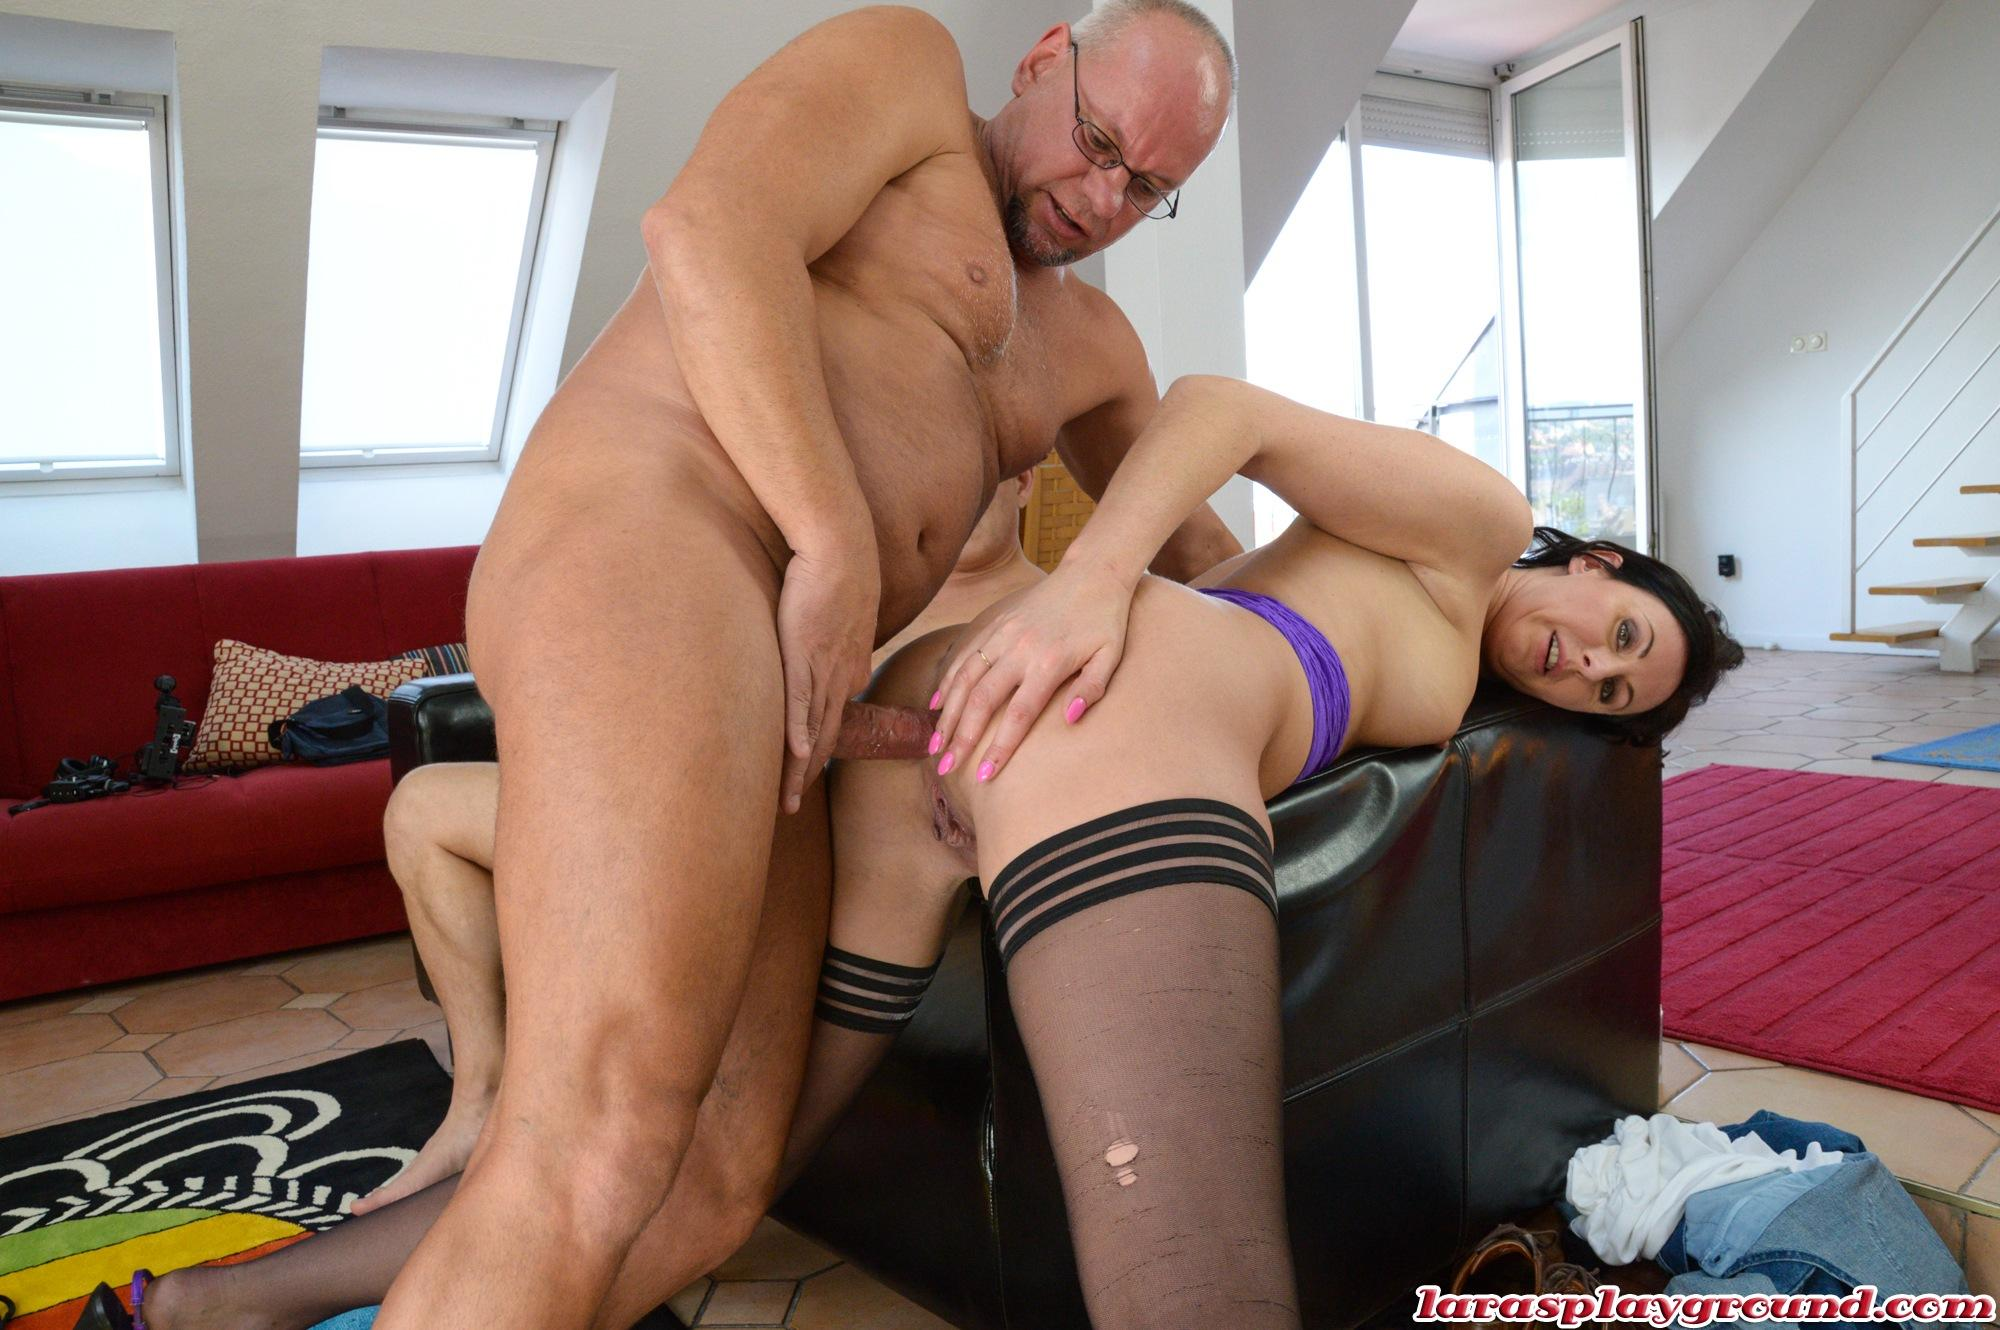 Anal Porn Hd 2 Guys lara latex in a threesome with 2 bald guys and anal sex